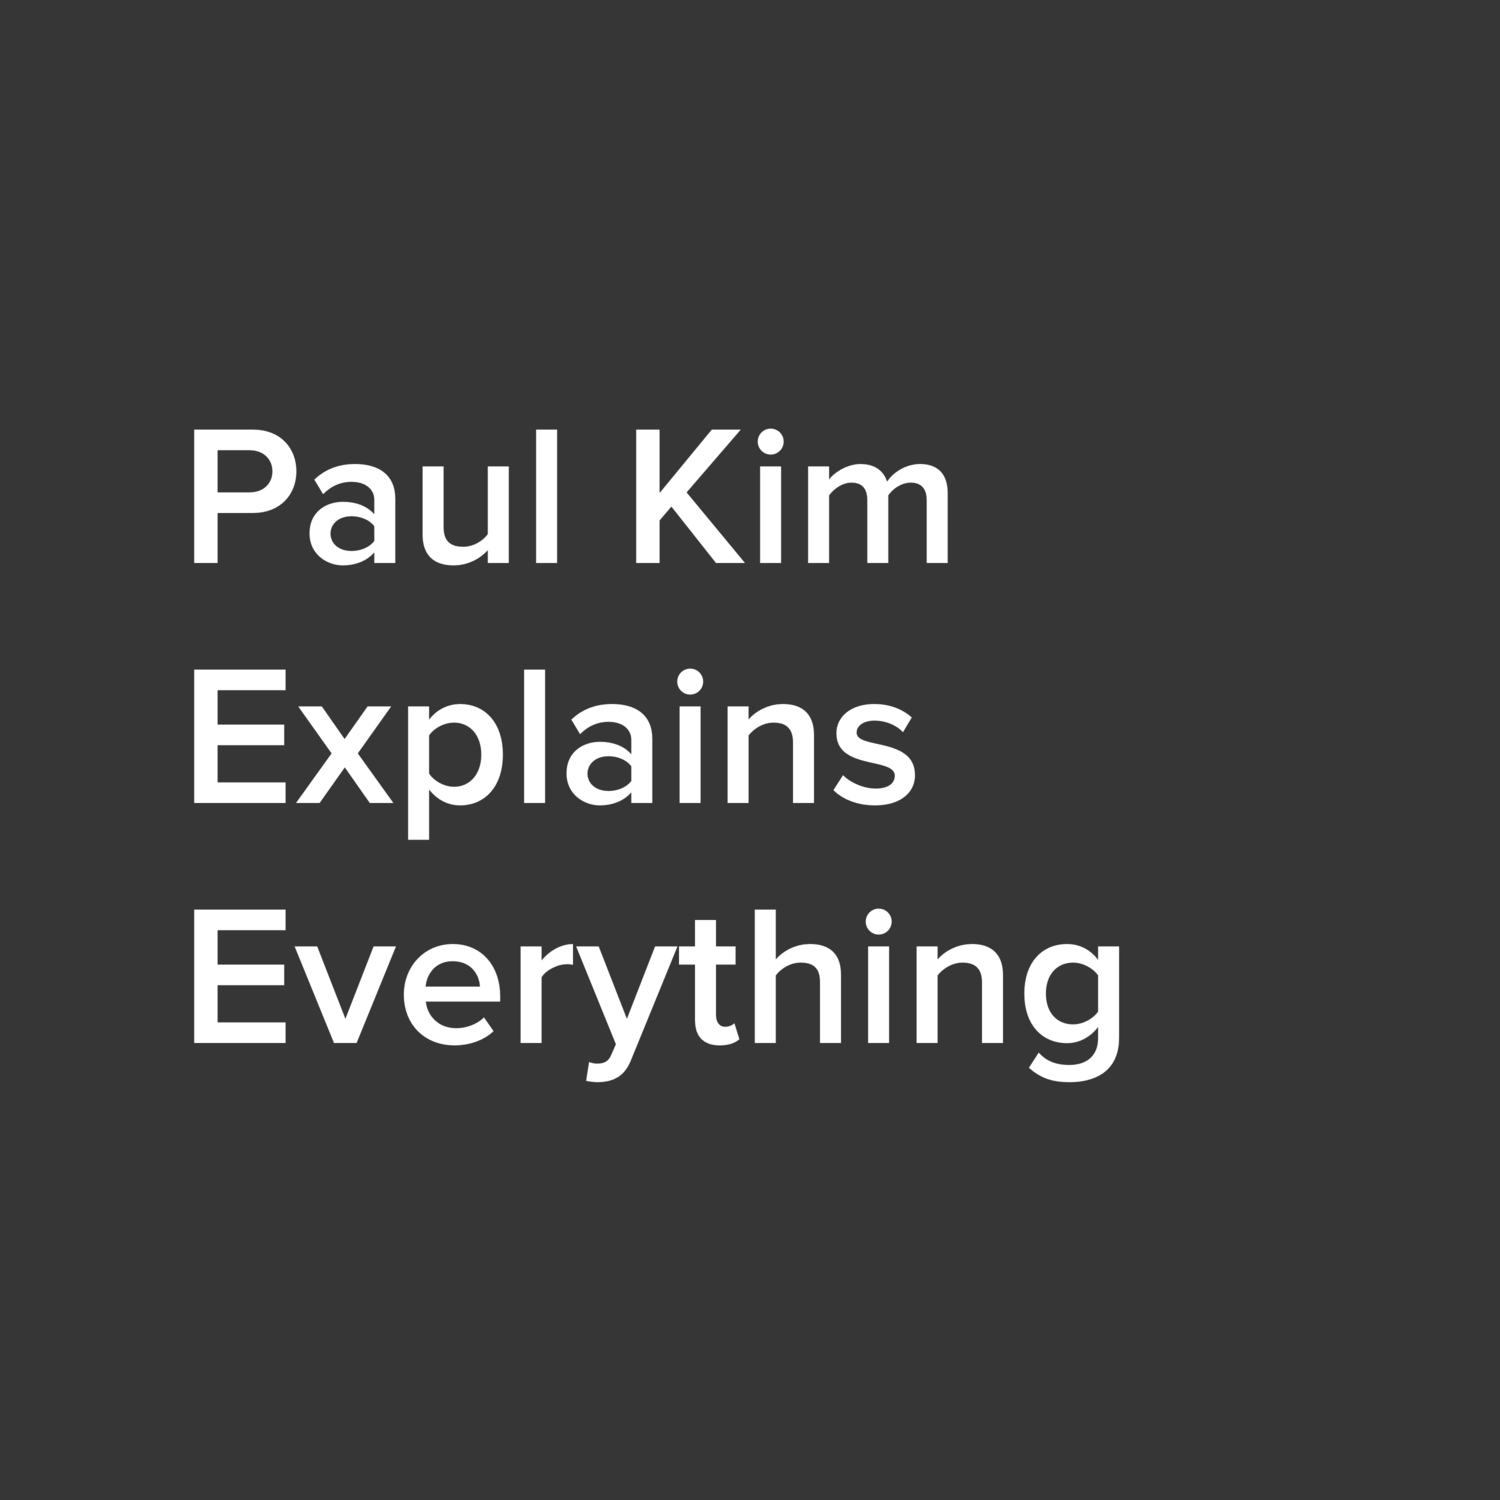 Paul Kim Explains Everything